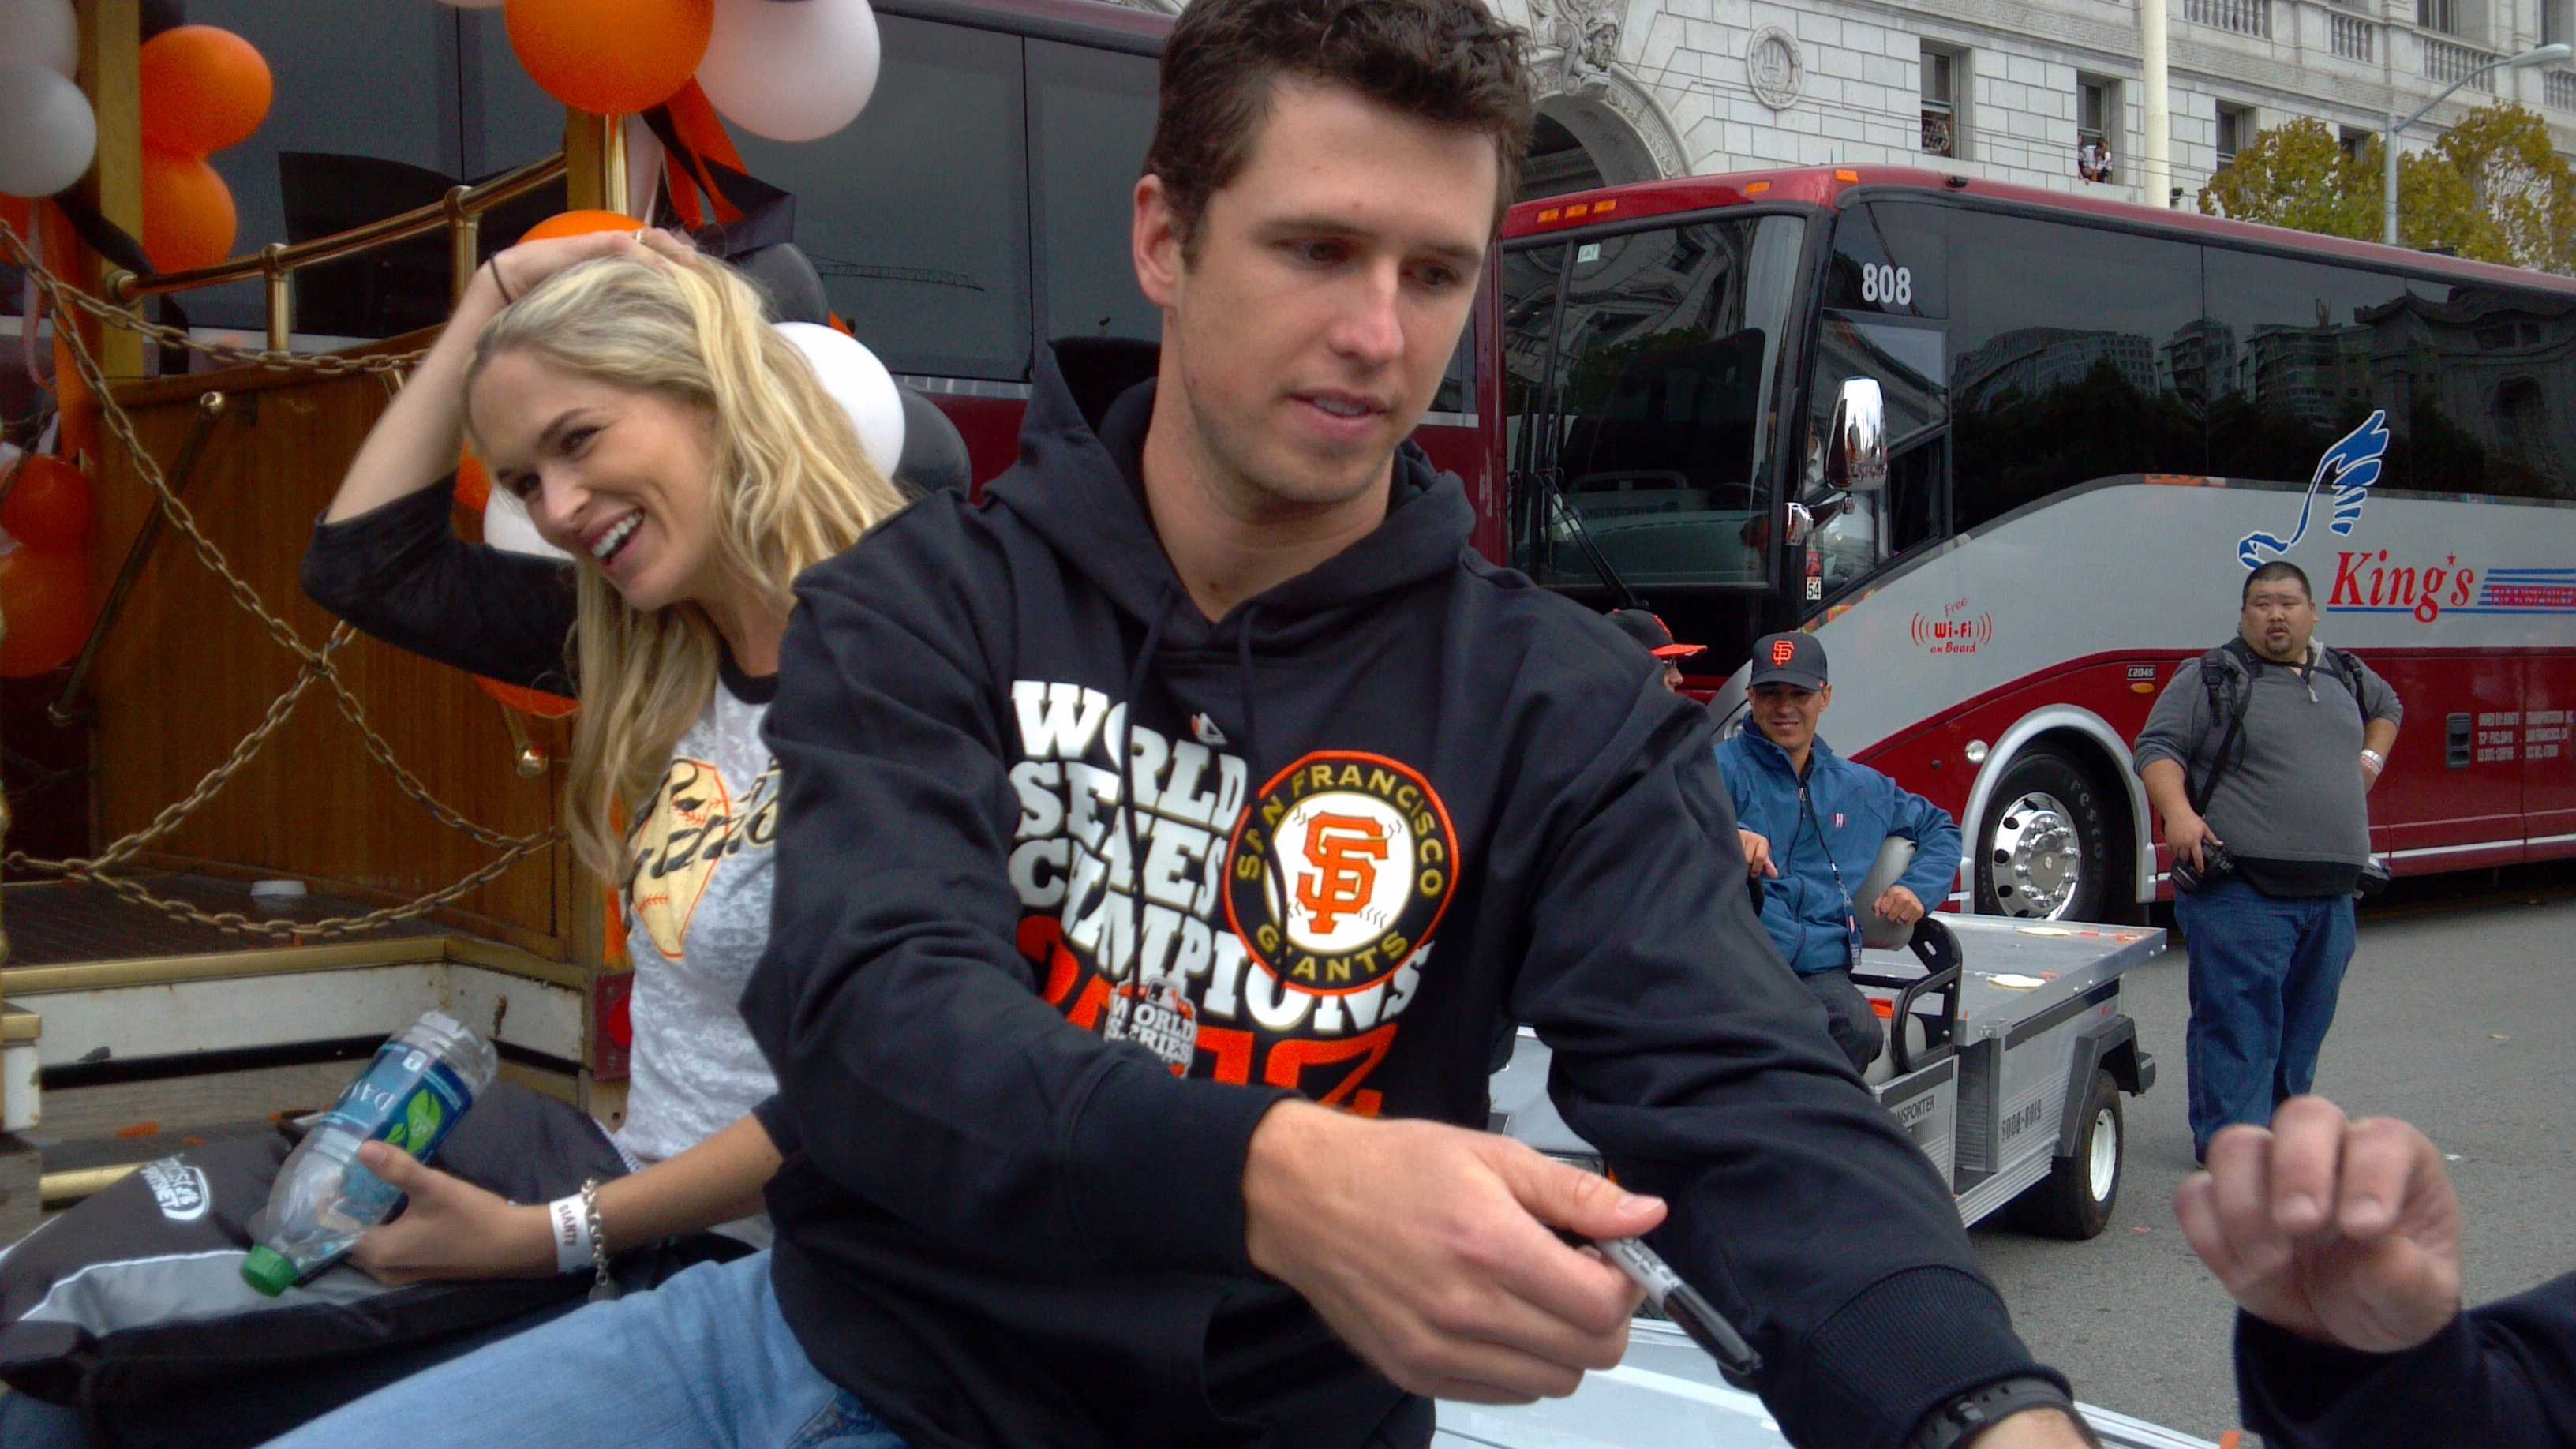 Giants parade 20 103112 JV.jpg